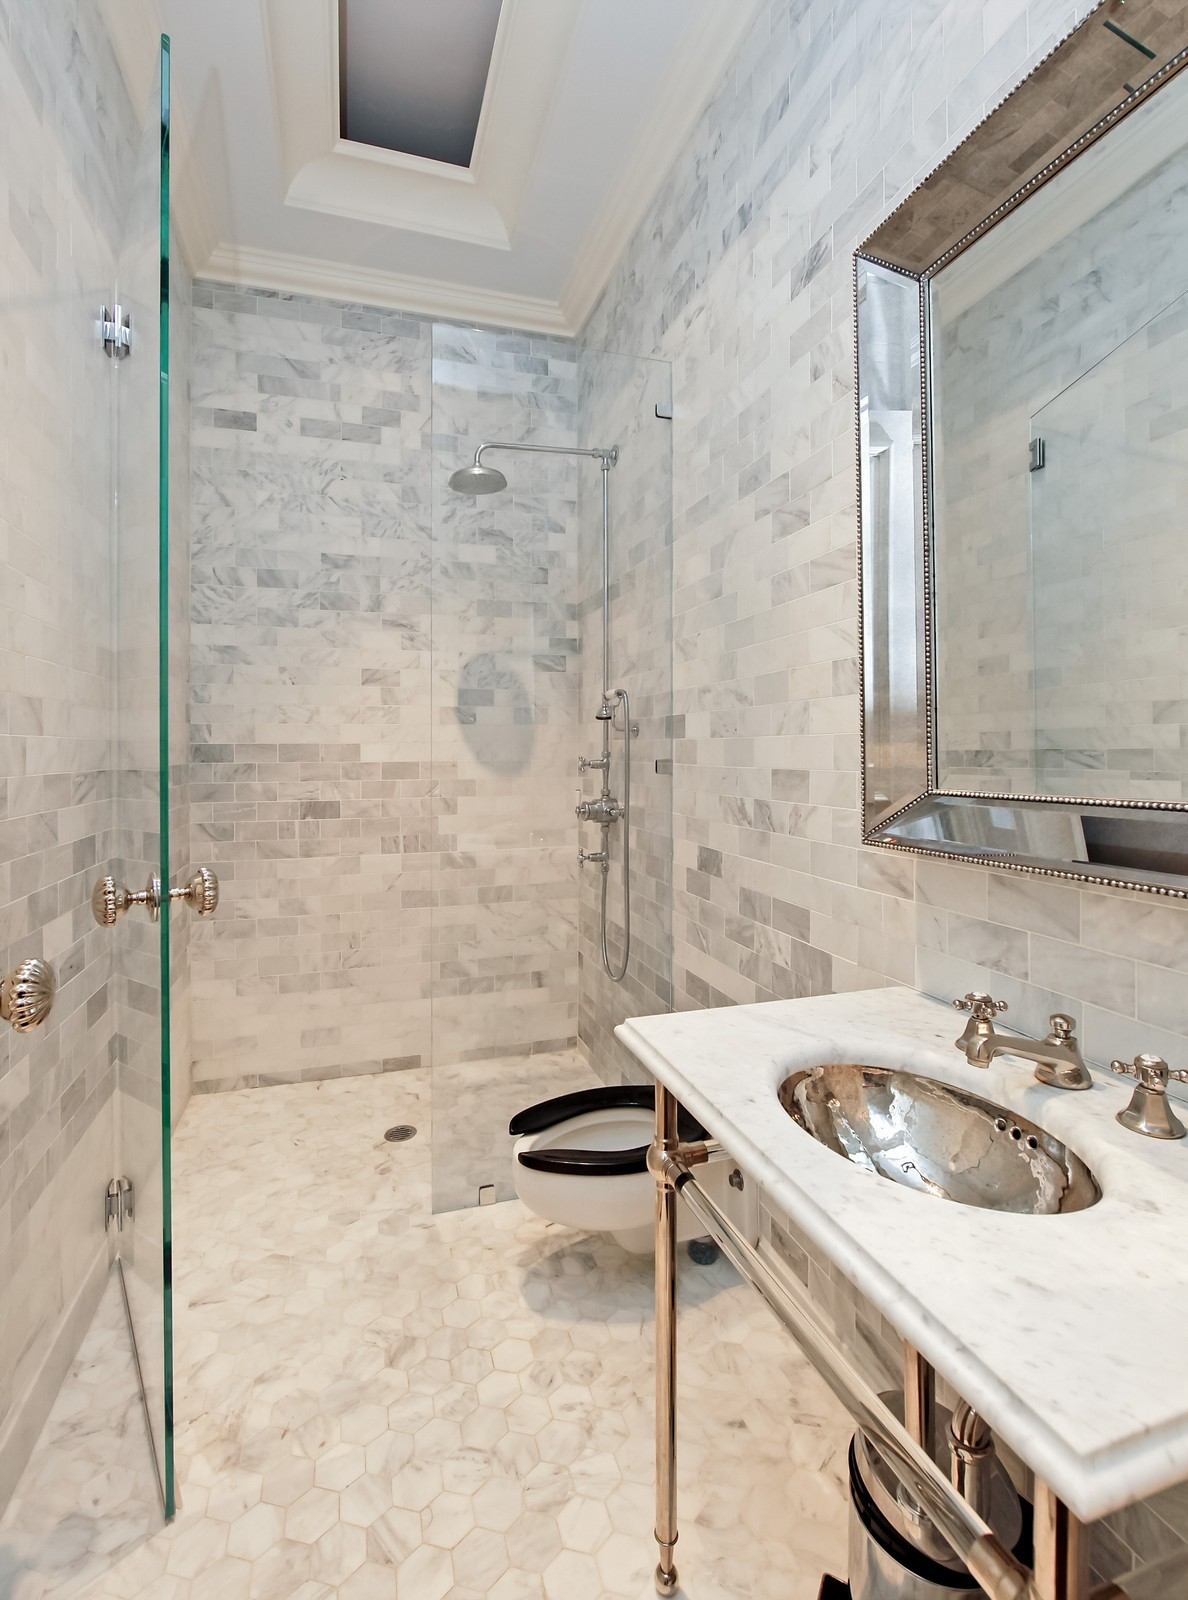 Real Estate Photography - 1424 W Ohio St, Chicago, IL, 60622 - Bathroom